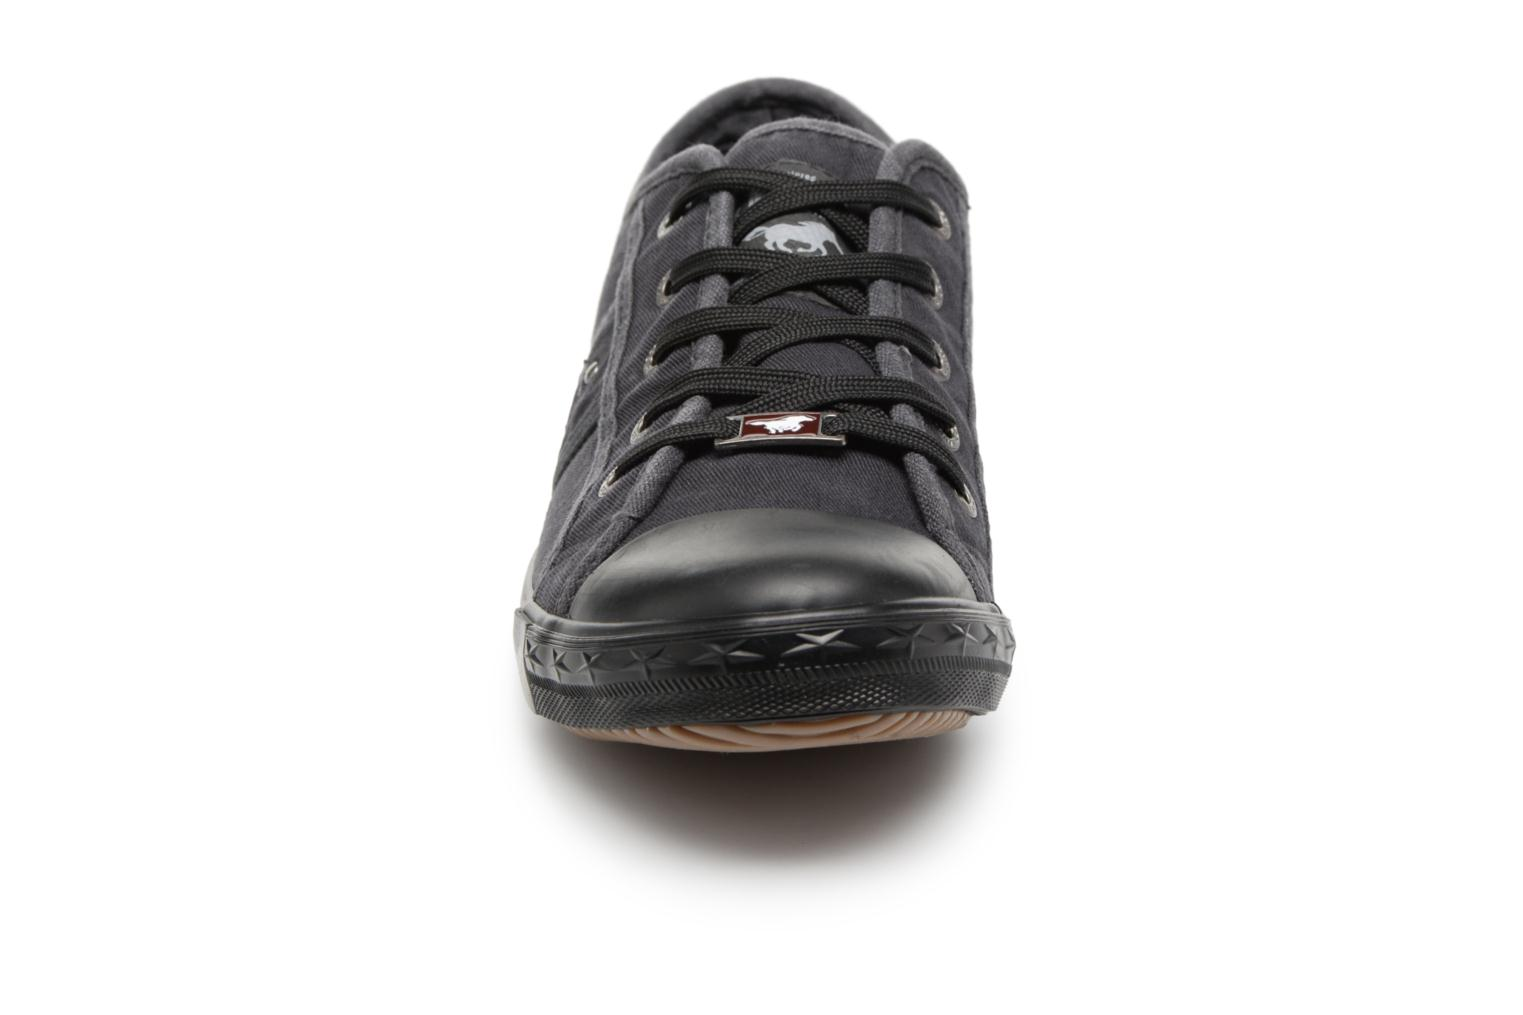 259 Mustang Mustang Graphit Shoes Shoes Bamba Graphit Bamba 0CC6tqw